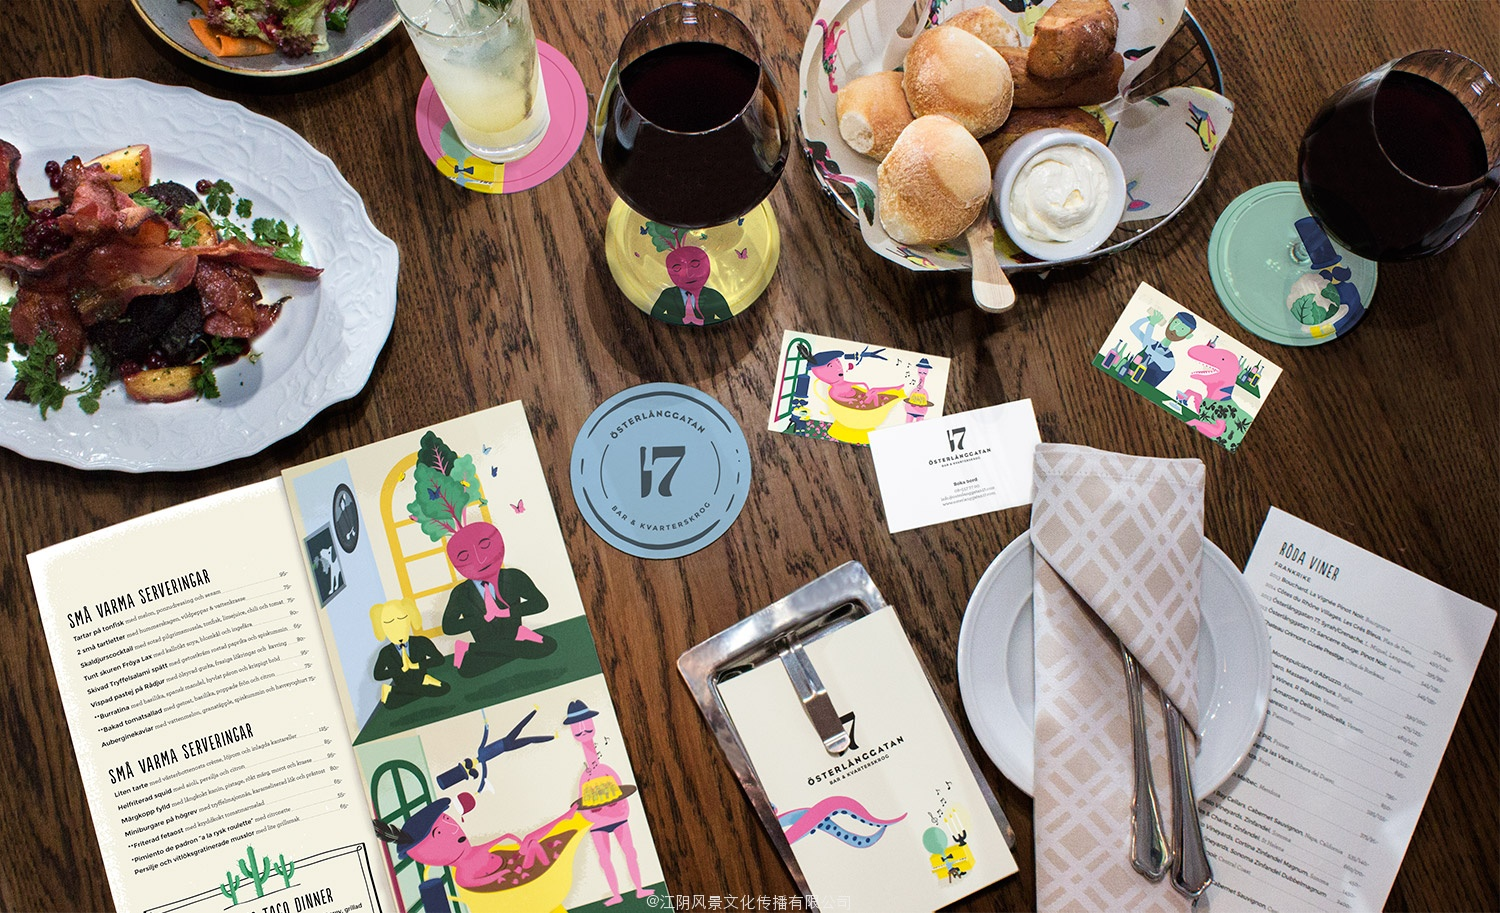 Brand identity, menus and coasters for Stockholm restaurant Österlånggatan 17 by Lobby Design